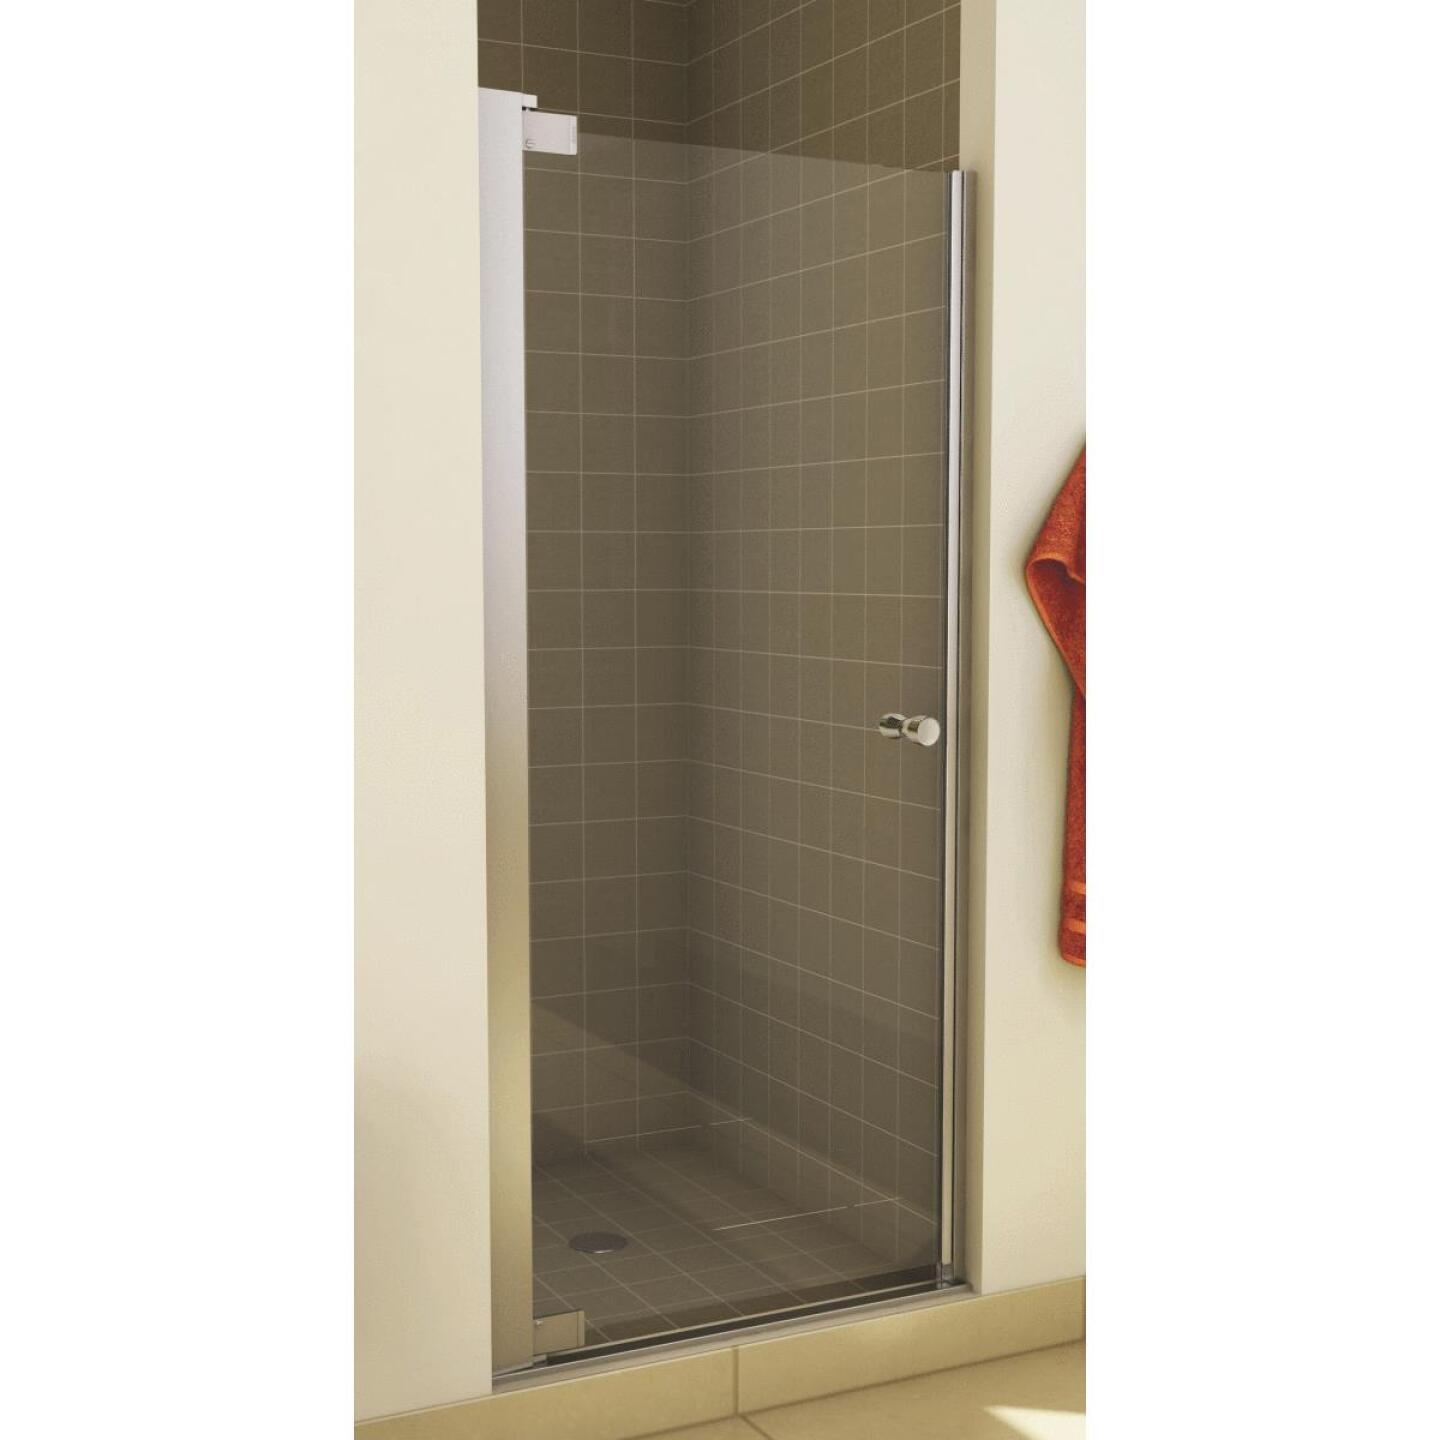 Maax Madono 33.5 In. W. X 67 In. H. Chrome Clear Glass Pivot Shower Door Image 1